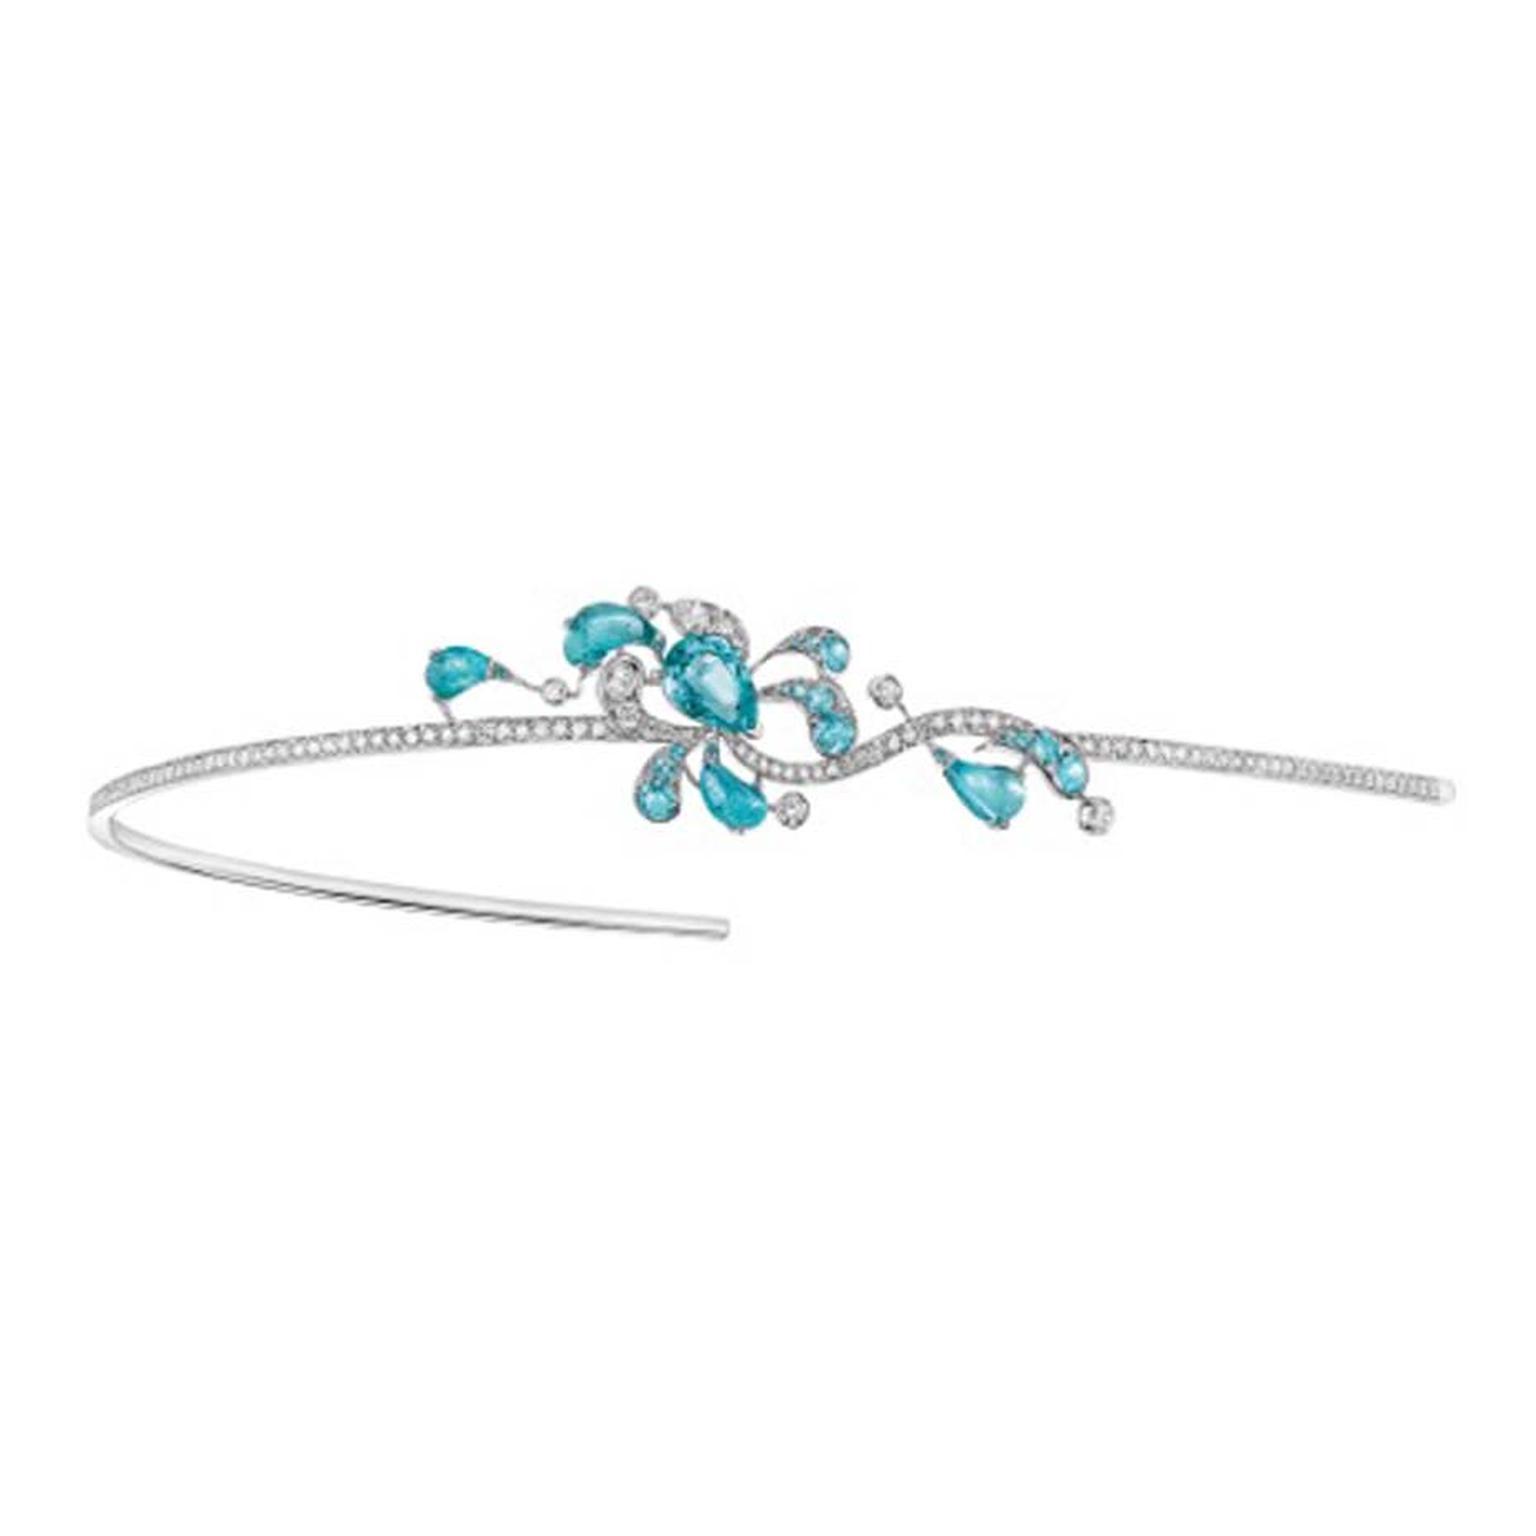 Chaumet hair ornament in white gold, set with diamonds and Paraiba-like tourmalines from Africa, from the Lumières d'Eau high jewellery collection.